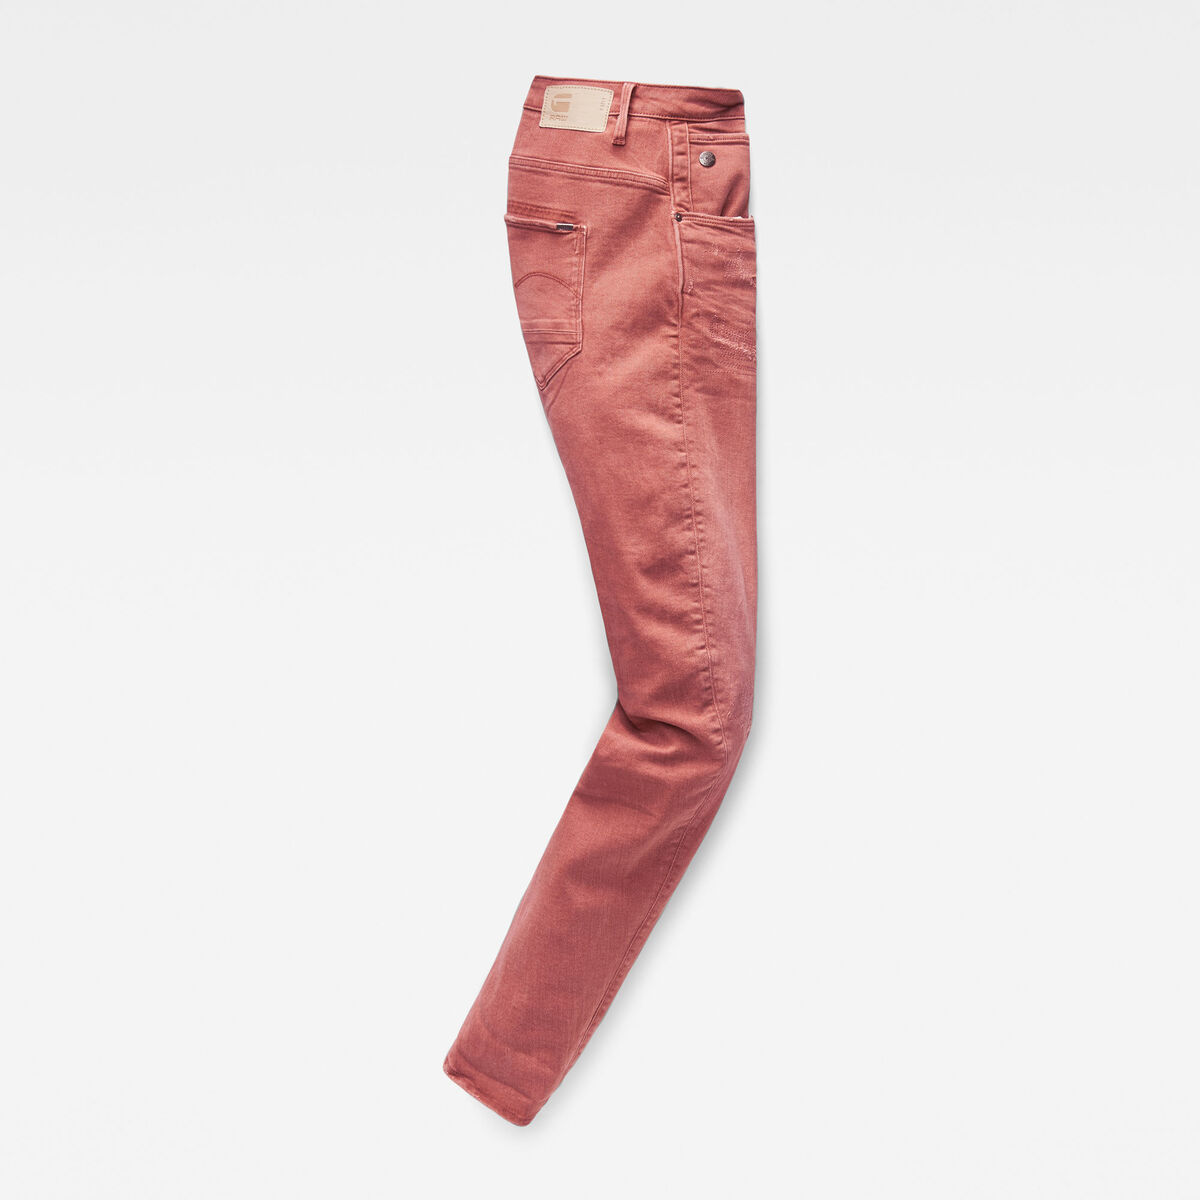 Bild 5 von Arc 3D Low Boyfriend Earthtrace Restored Colored Jeans